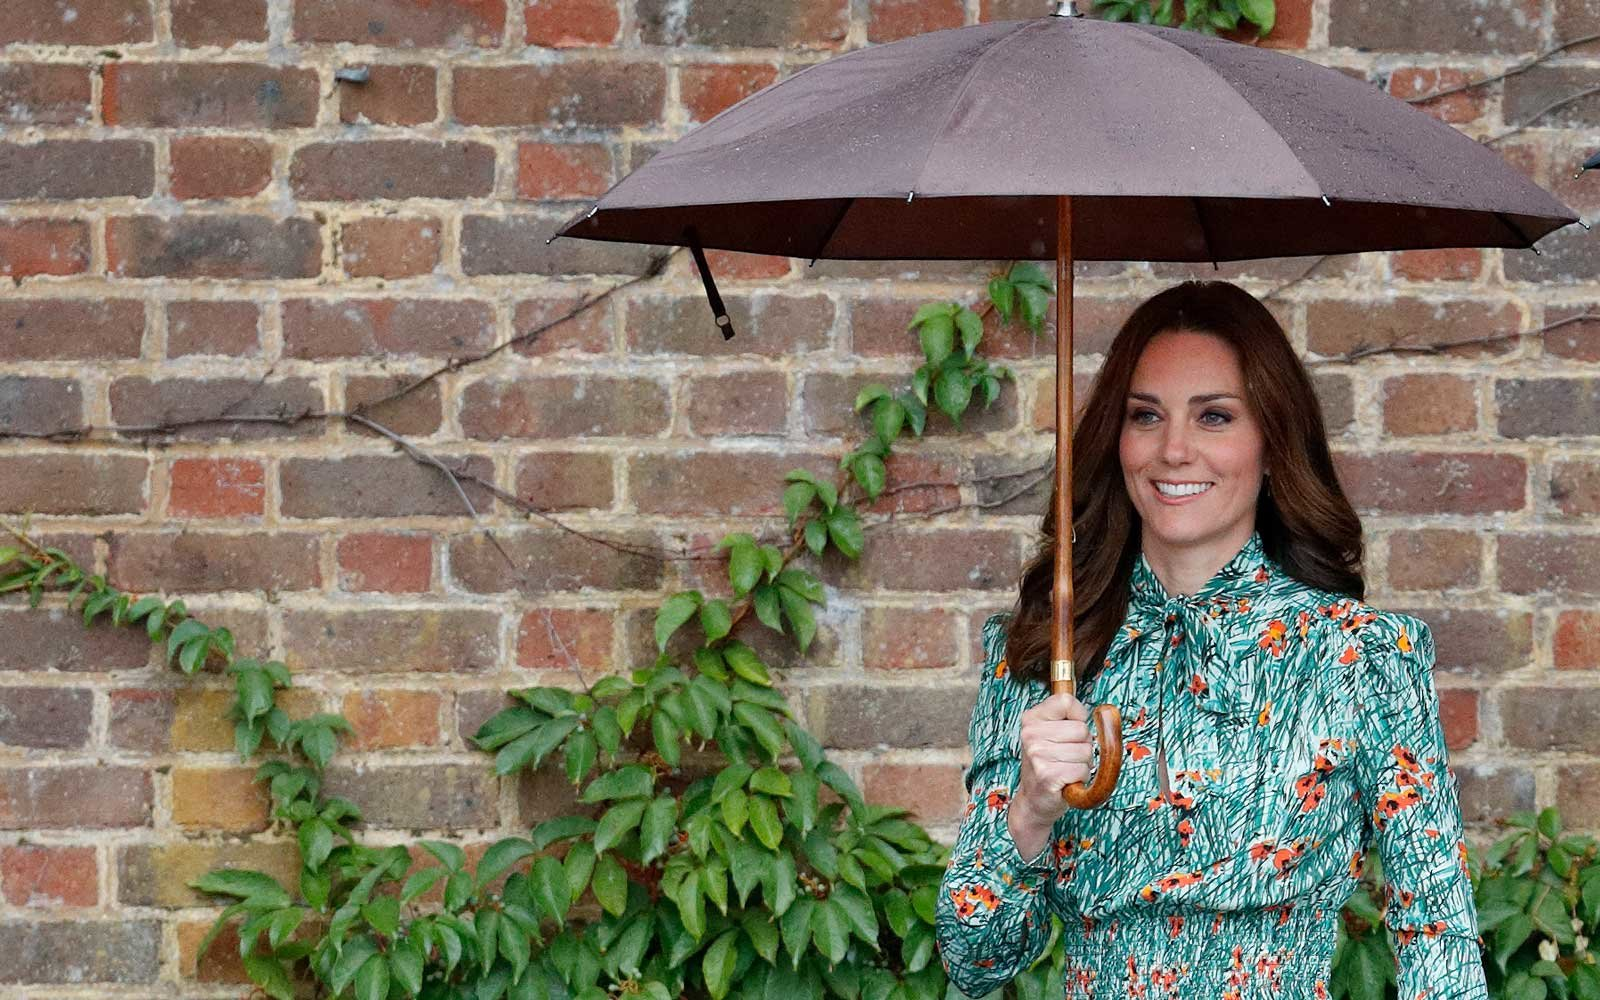 Kate Middleton Holding an Umbrella